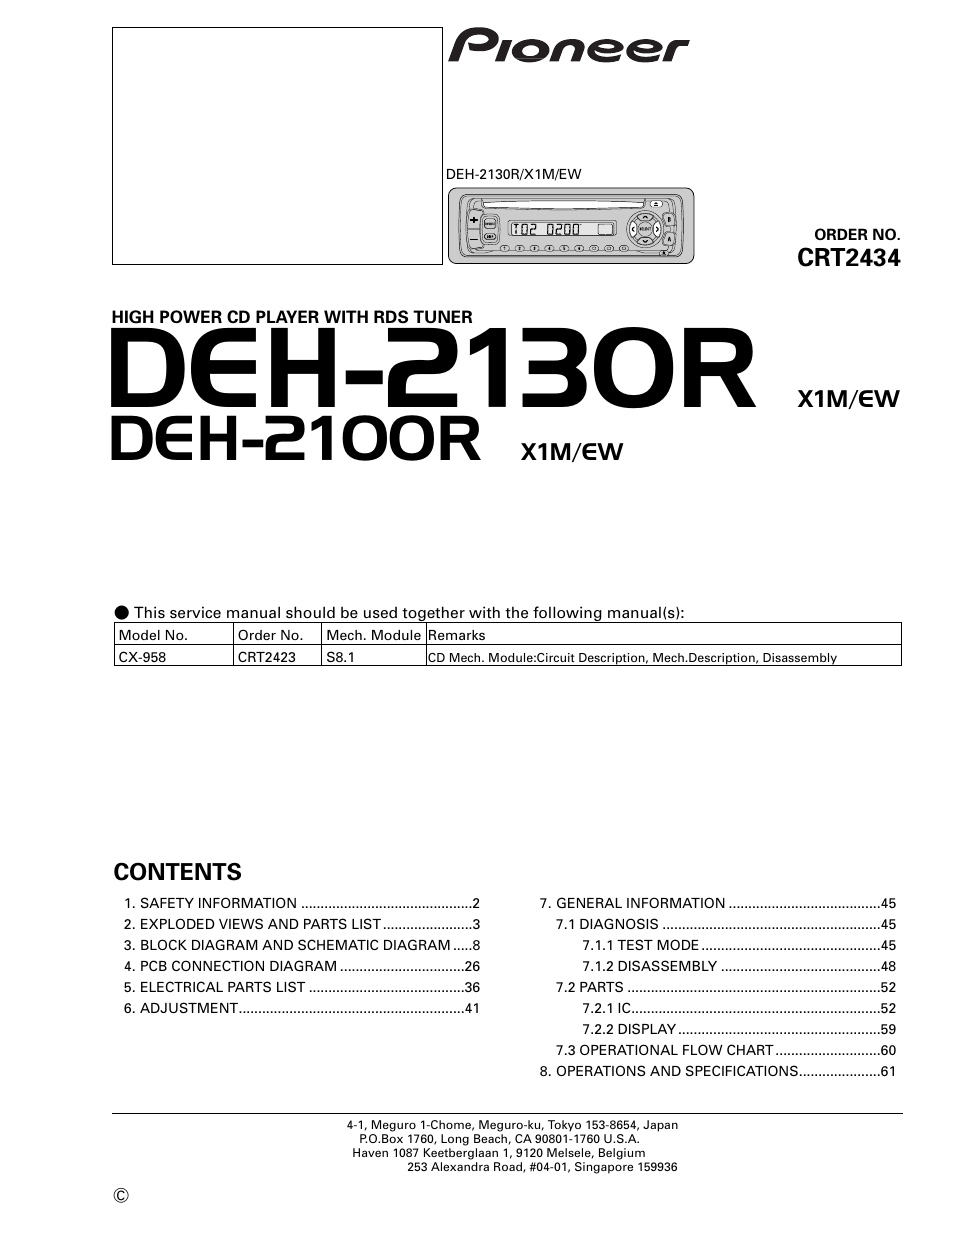 pioneer deh 2130r en page1 pioneer deh 2130r en user manual 66 pages also for deh 2100r en pioneer deh 16 wiring diagram at gsmx.co